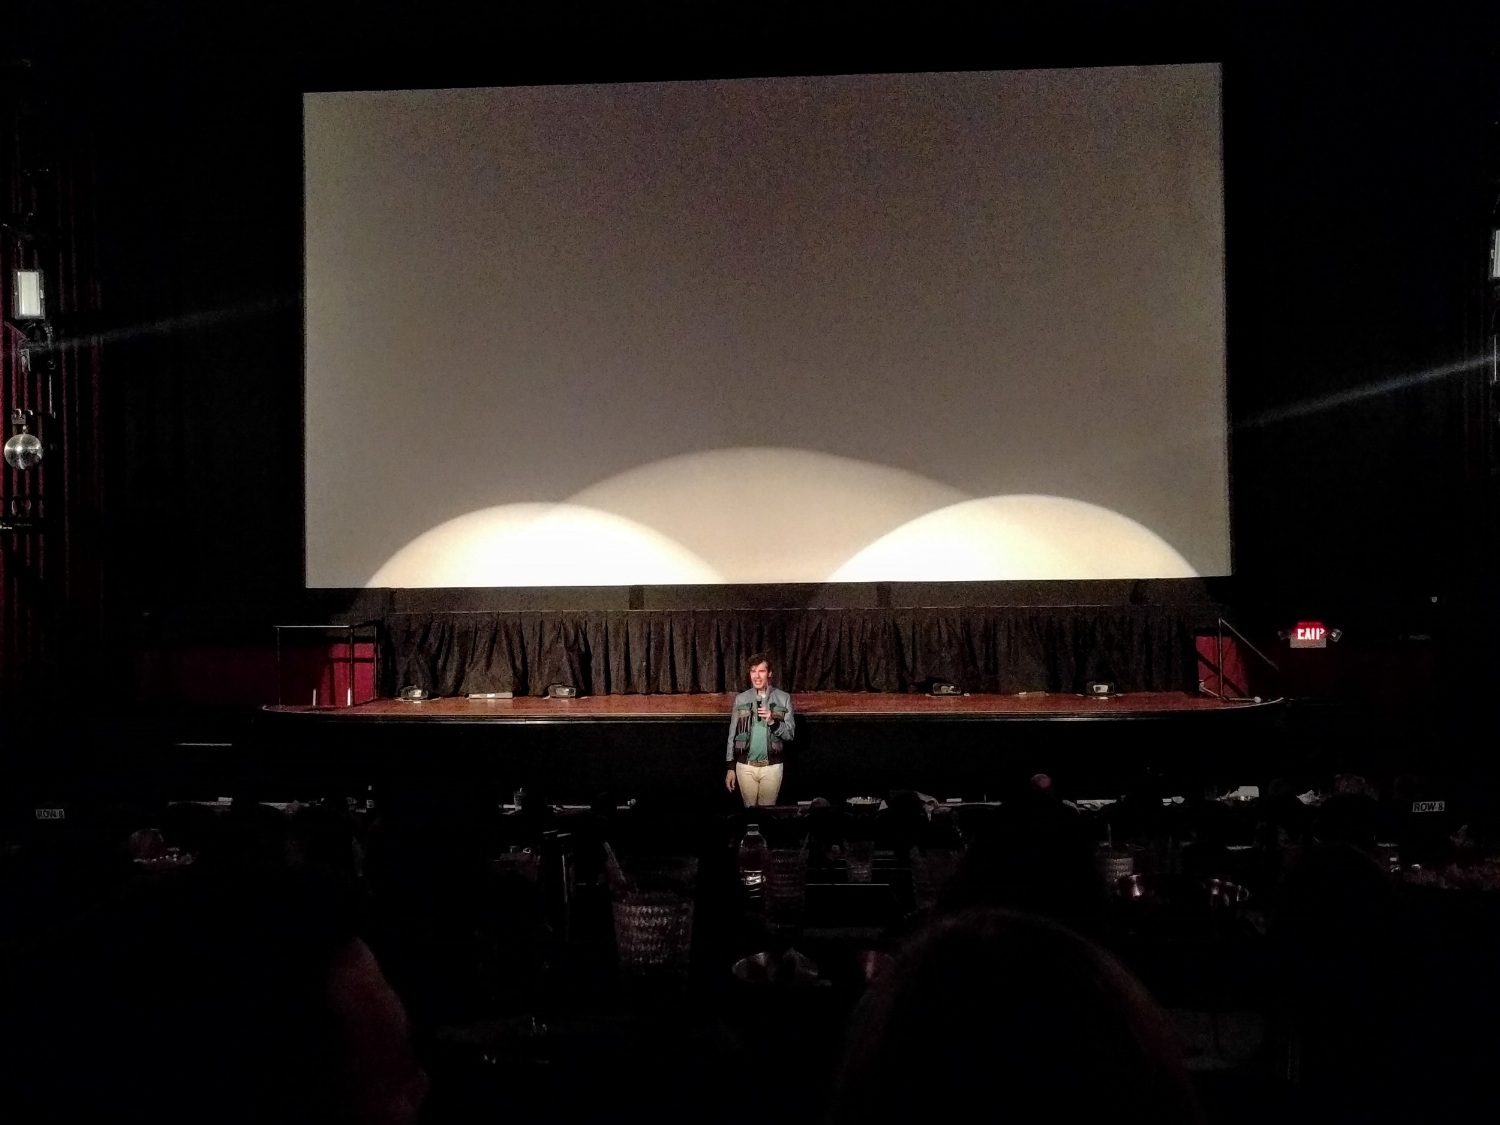 Stefan Sagmeister answering audience questions at the Alamo Drafthouse Ritz after a showing of his film,  The Happy Film